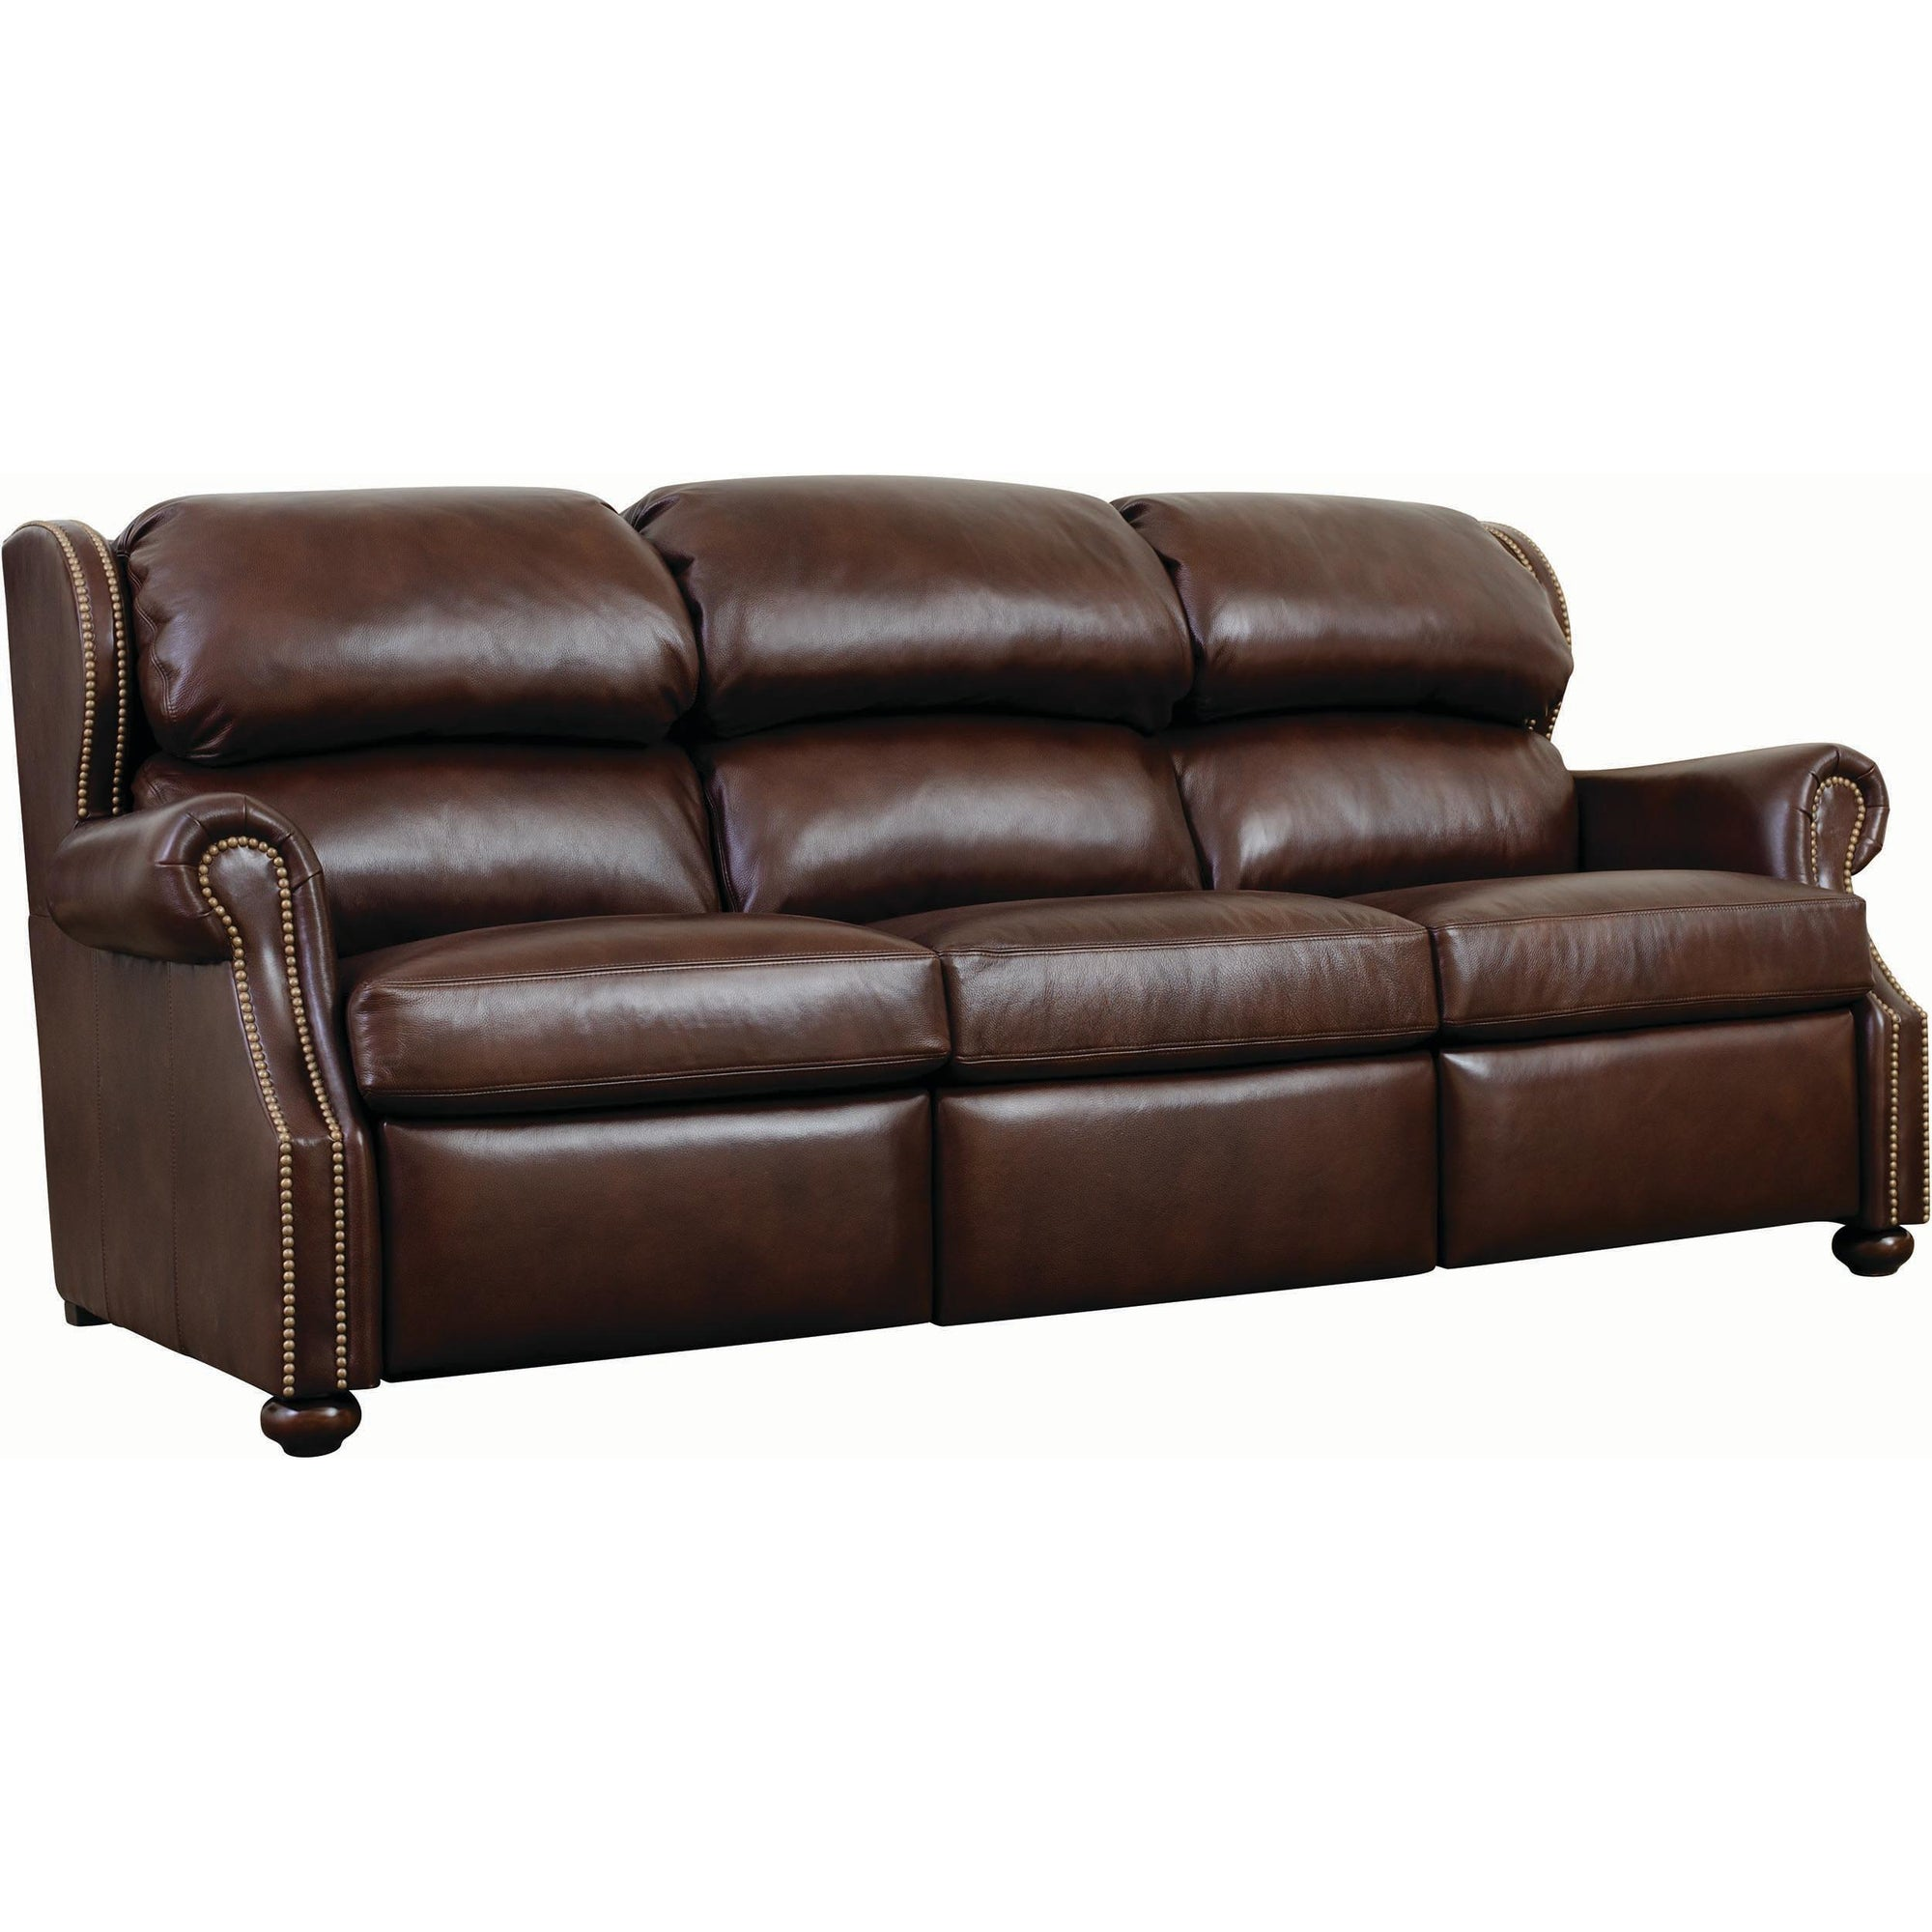 Durango Motion Sofa